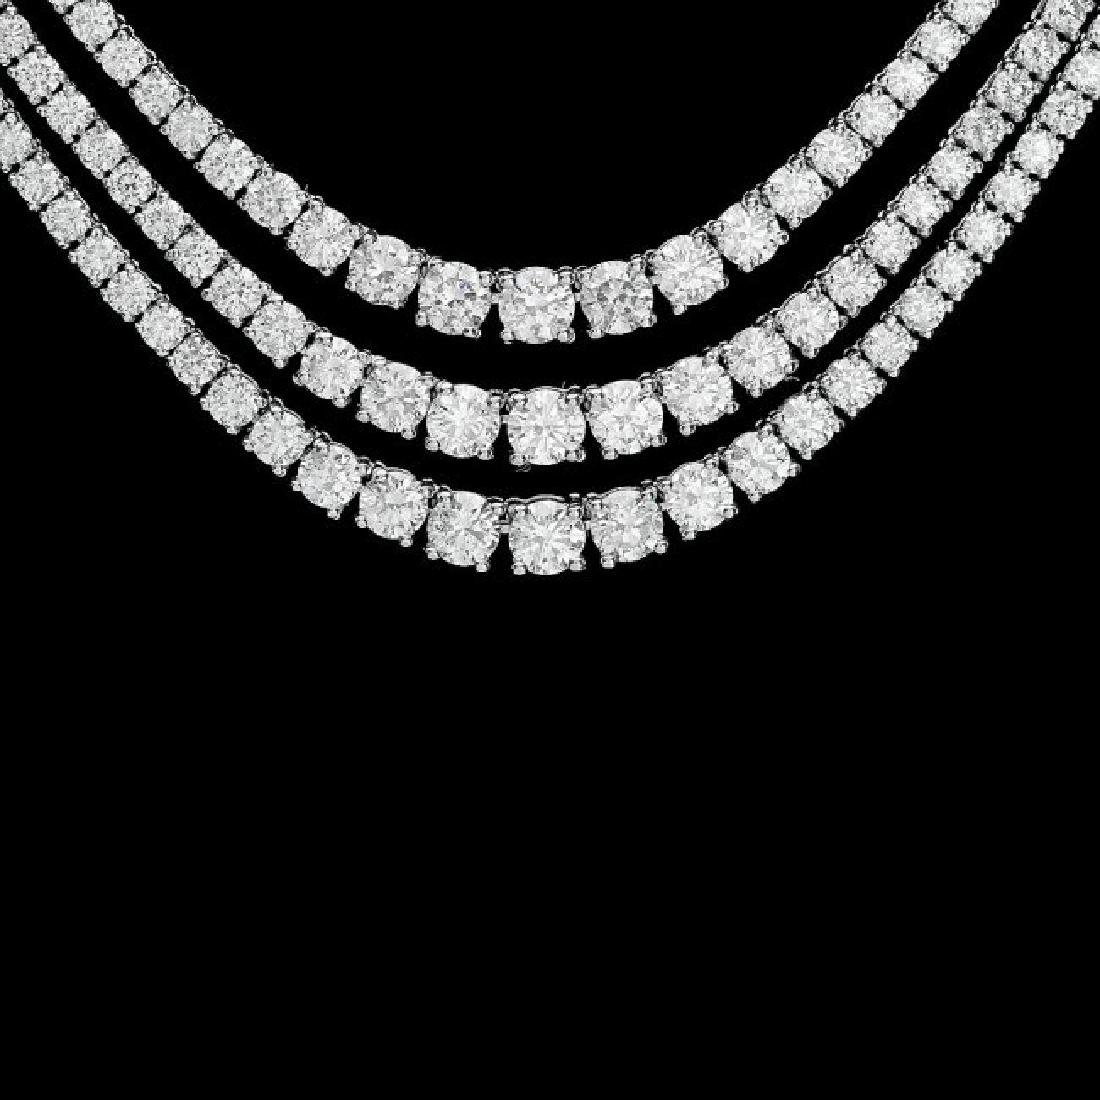 18k White Gold 23.10ct Diamond Necklace - 2